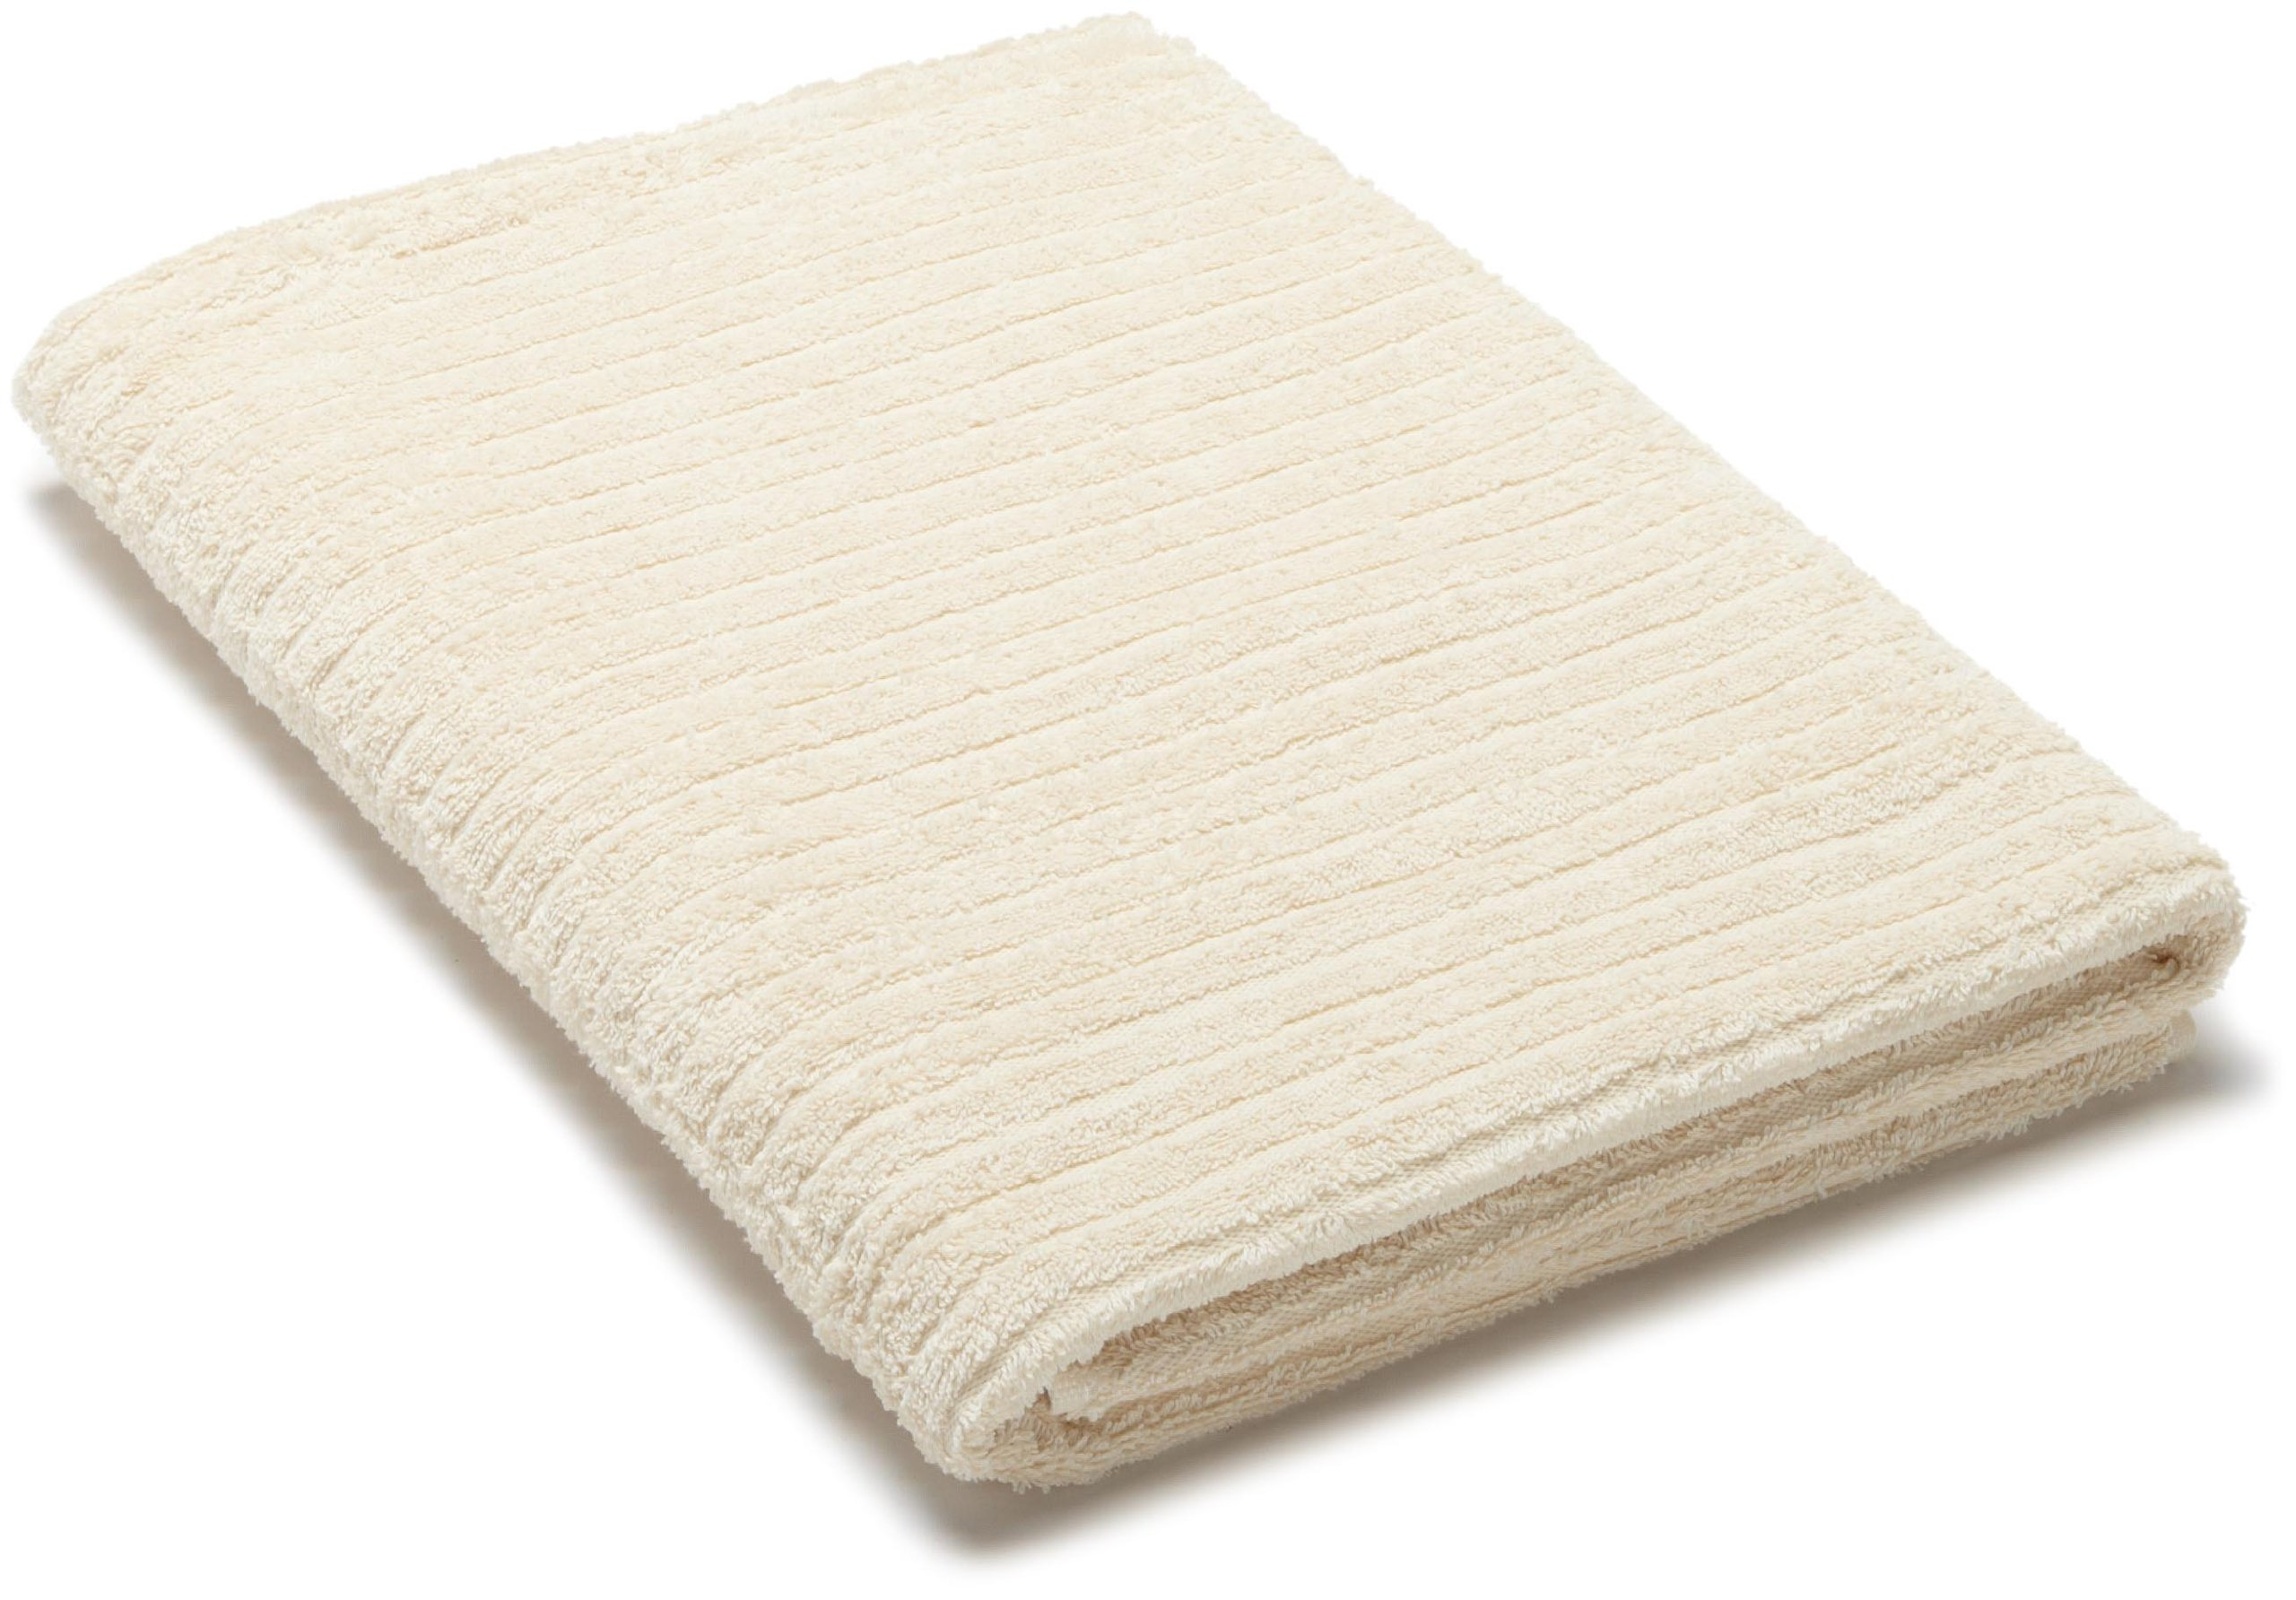 Danica Studio Aegean Bath Sheet, 36 by 66-Inch, Natural